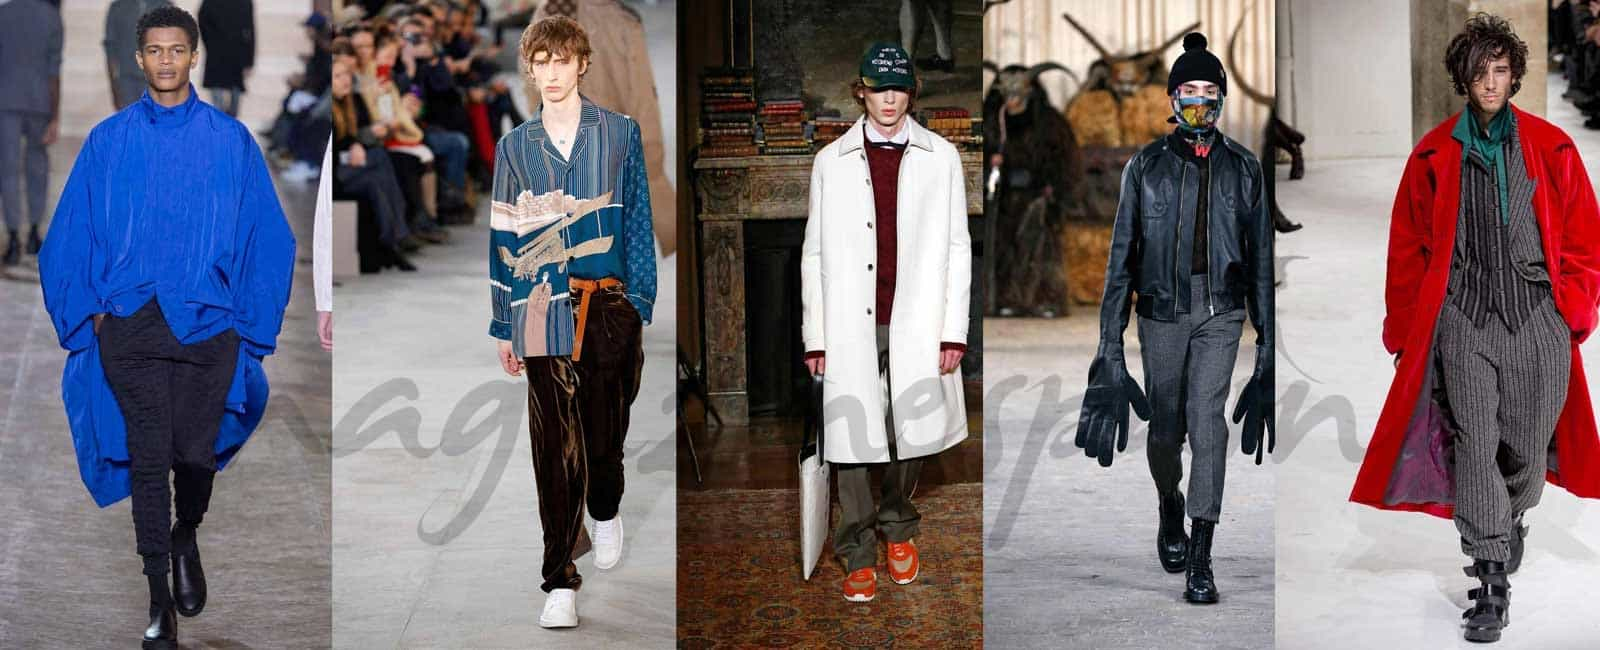 paris-fashion-week-men-otoño invierno 2017-2018